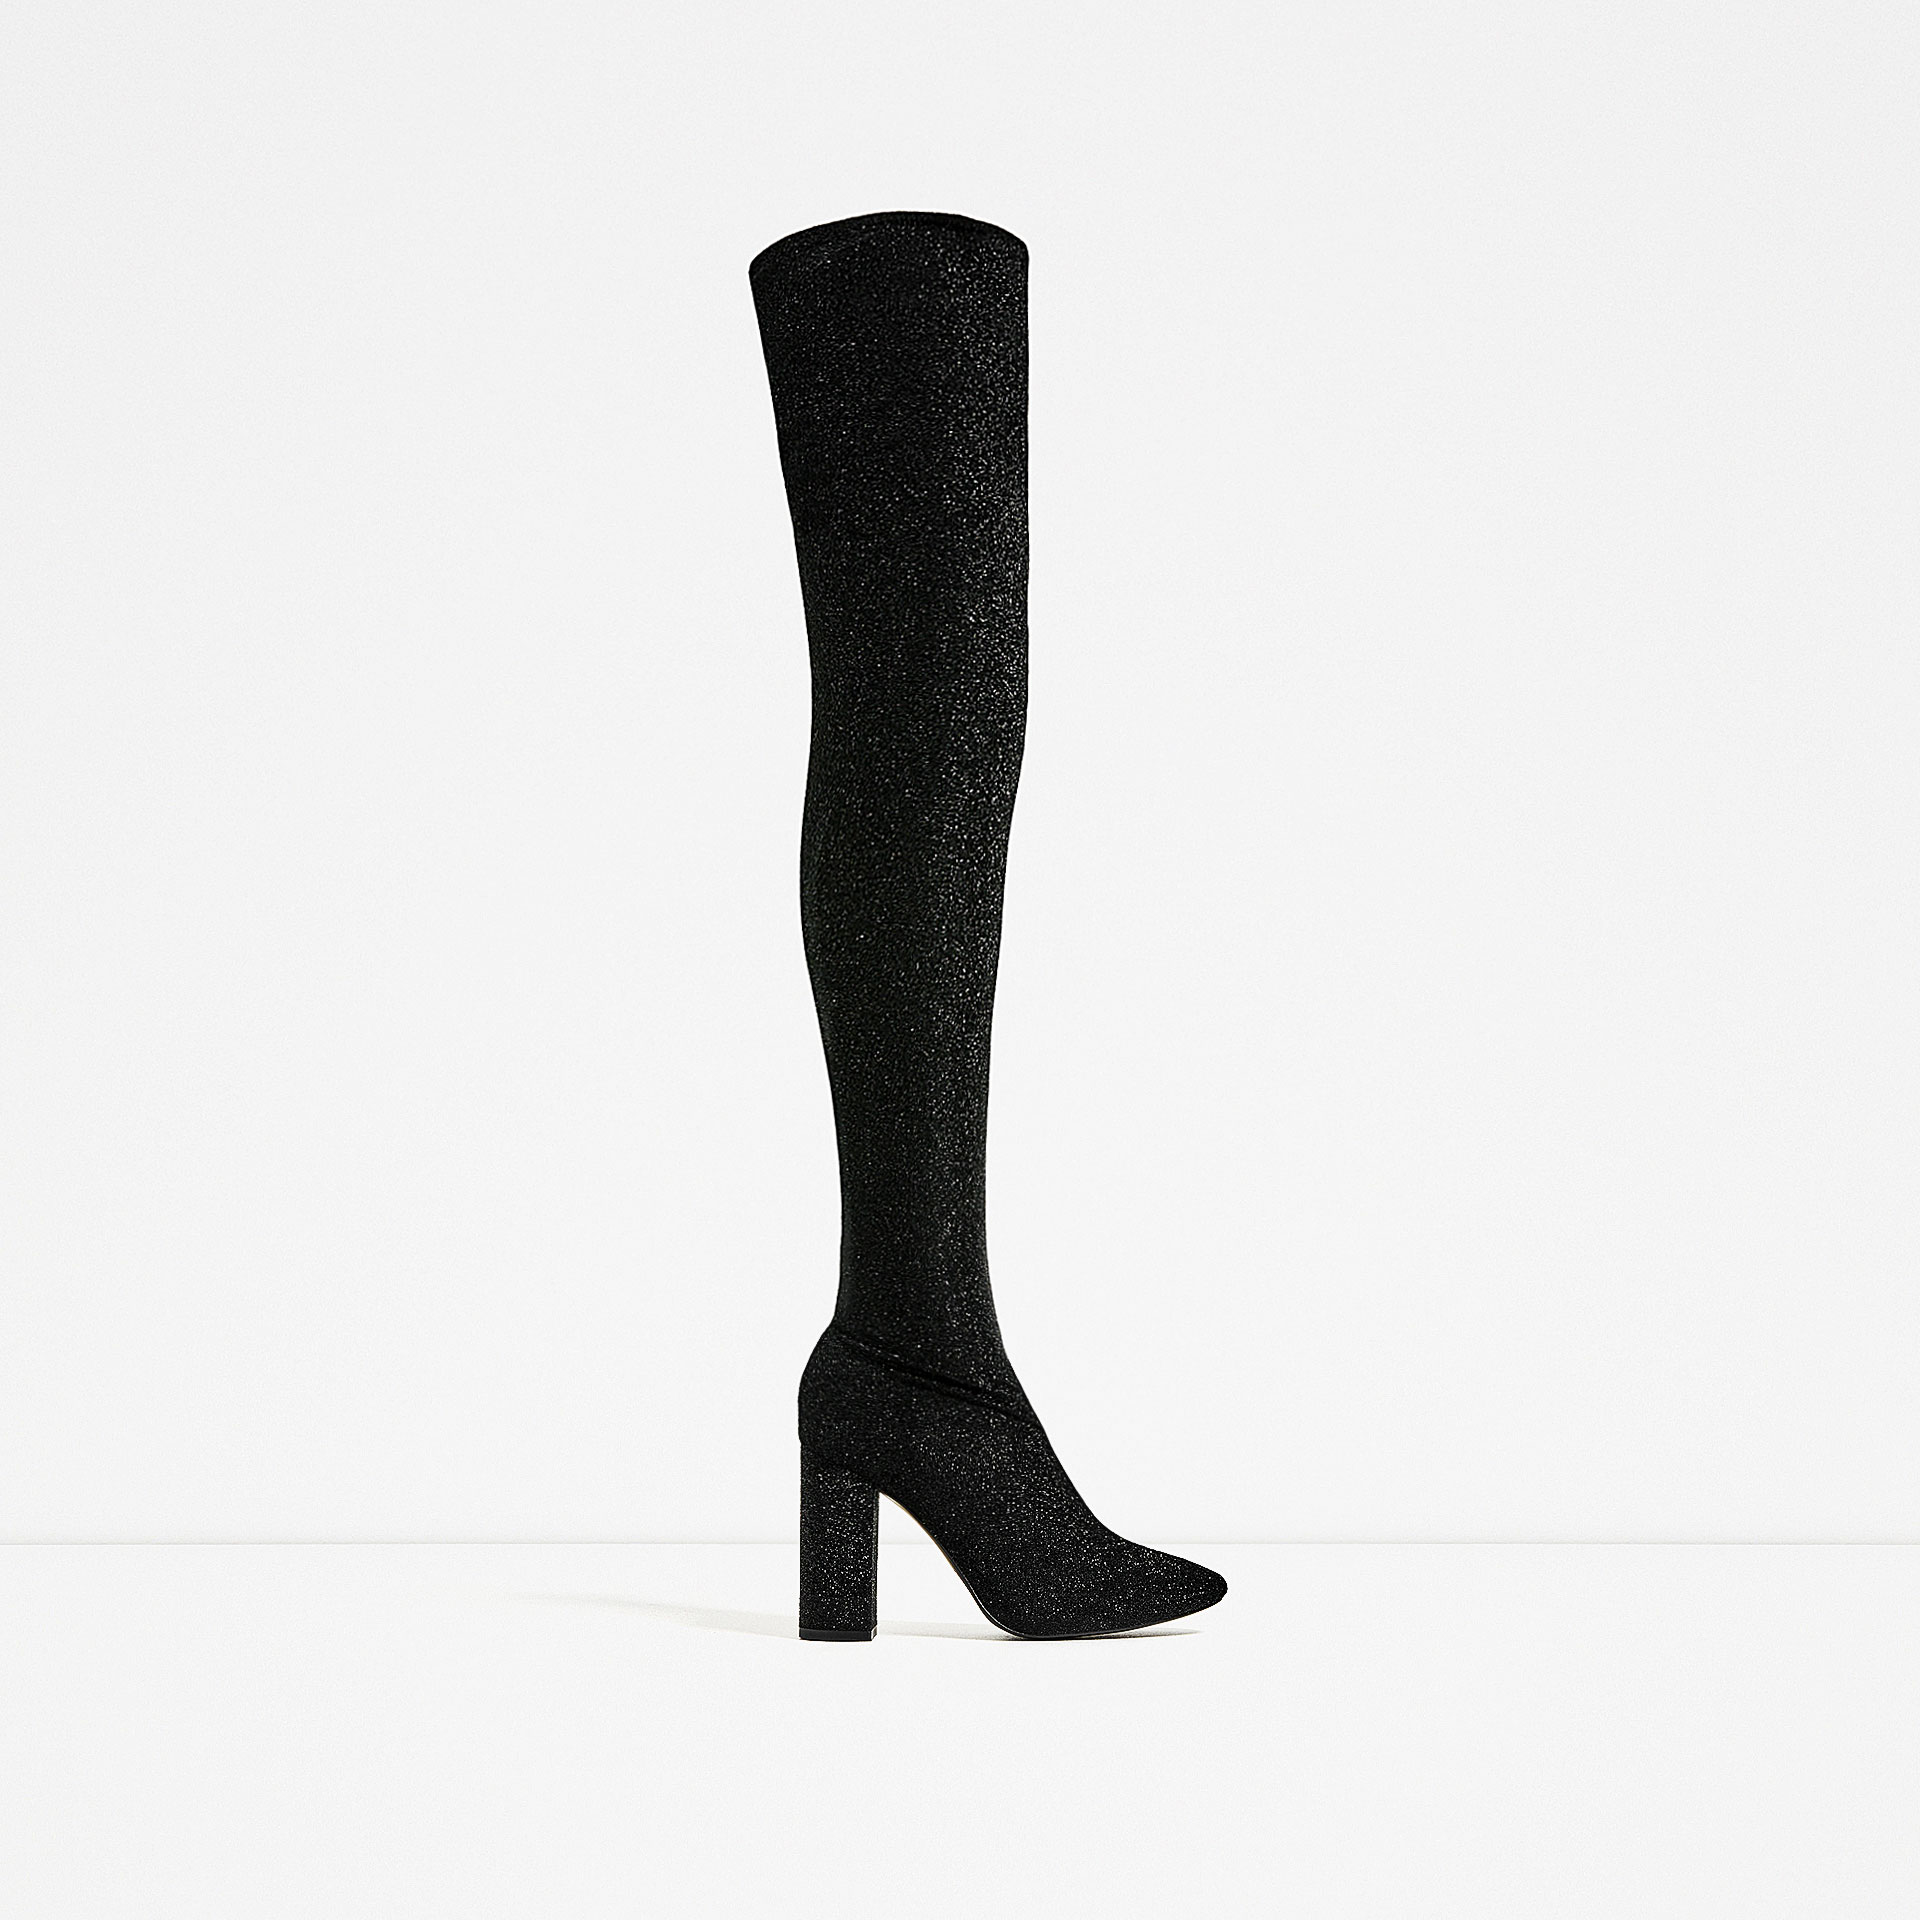 zara-over-the-knee-stretch-sparkly-boots